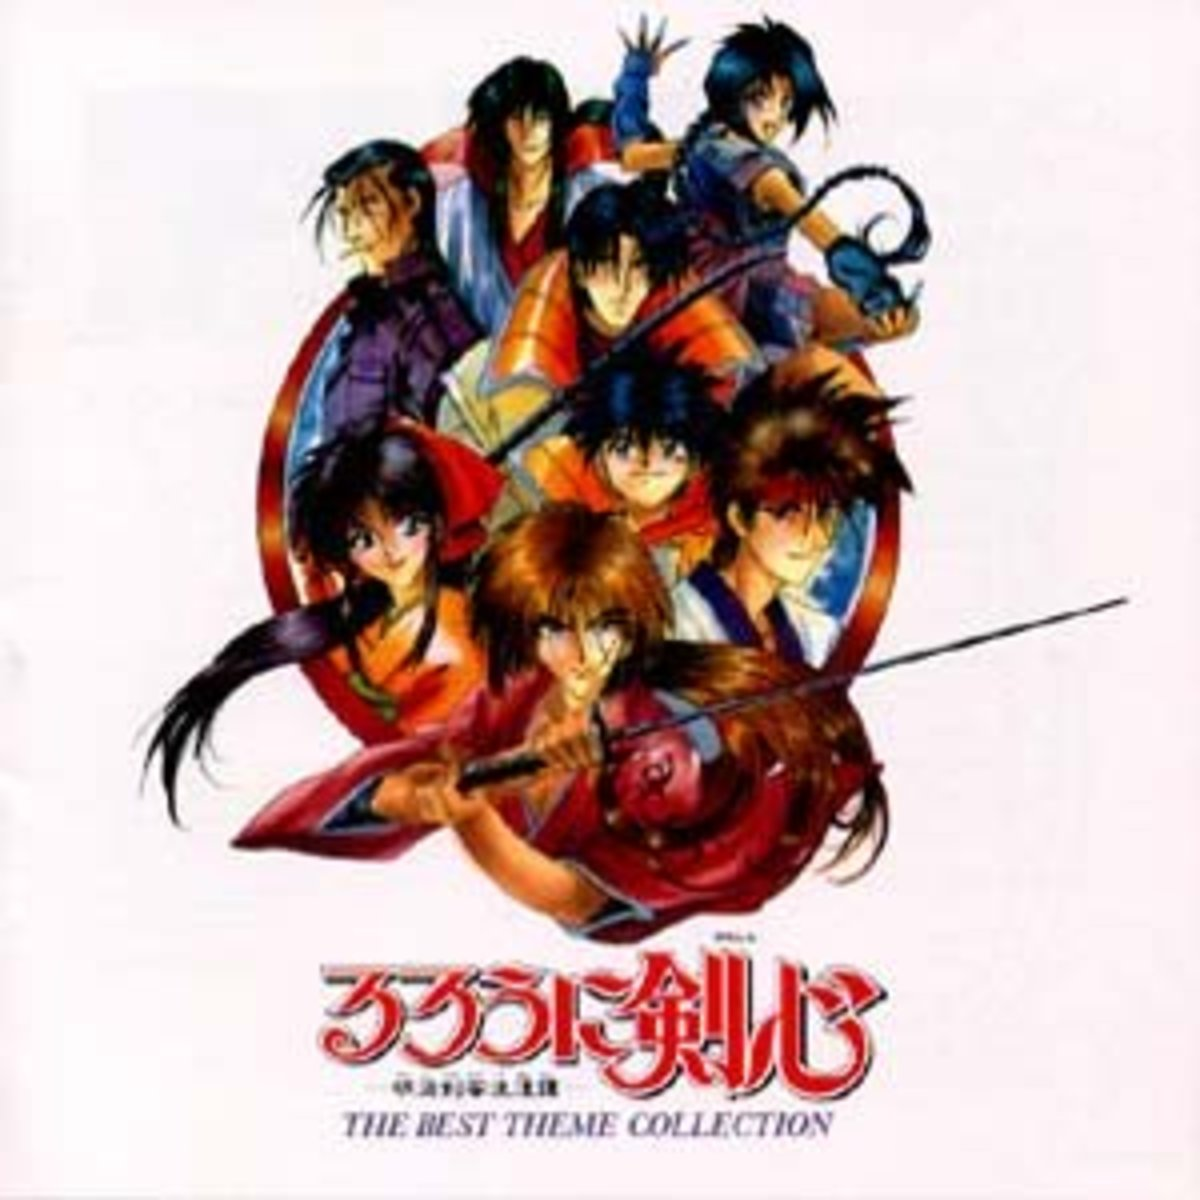 Rurouni Kenshin: The Best Theme Collection